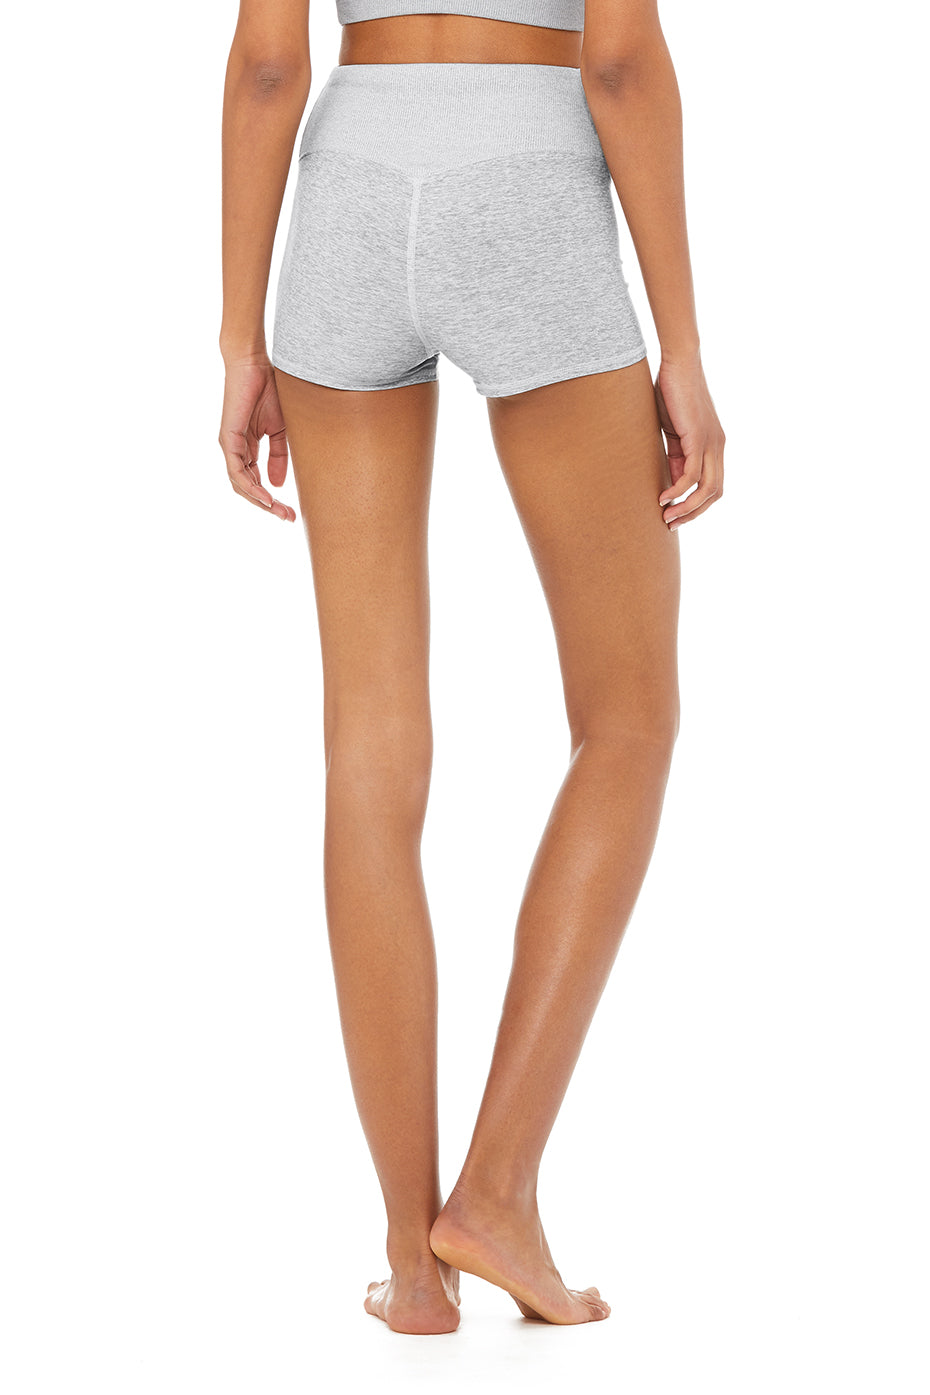 Here are the shorts in Zinc Heather recommend